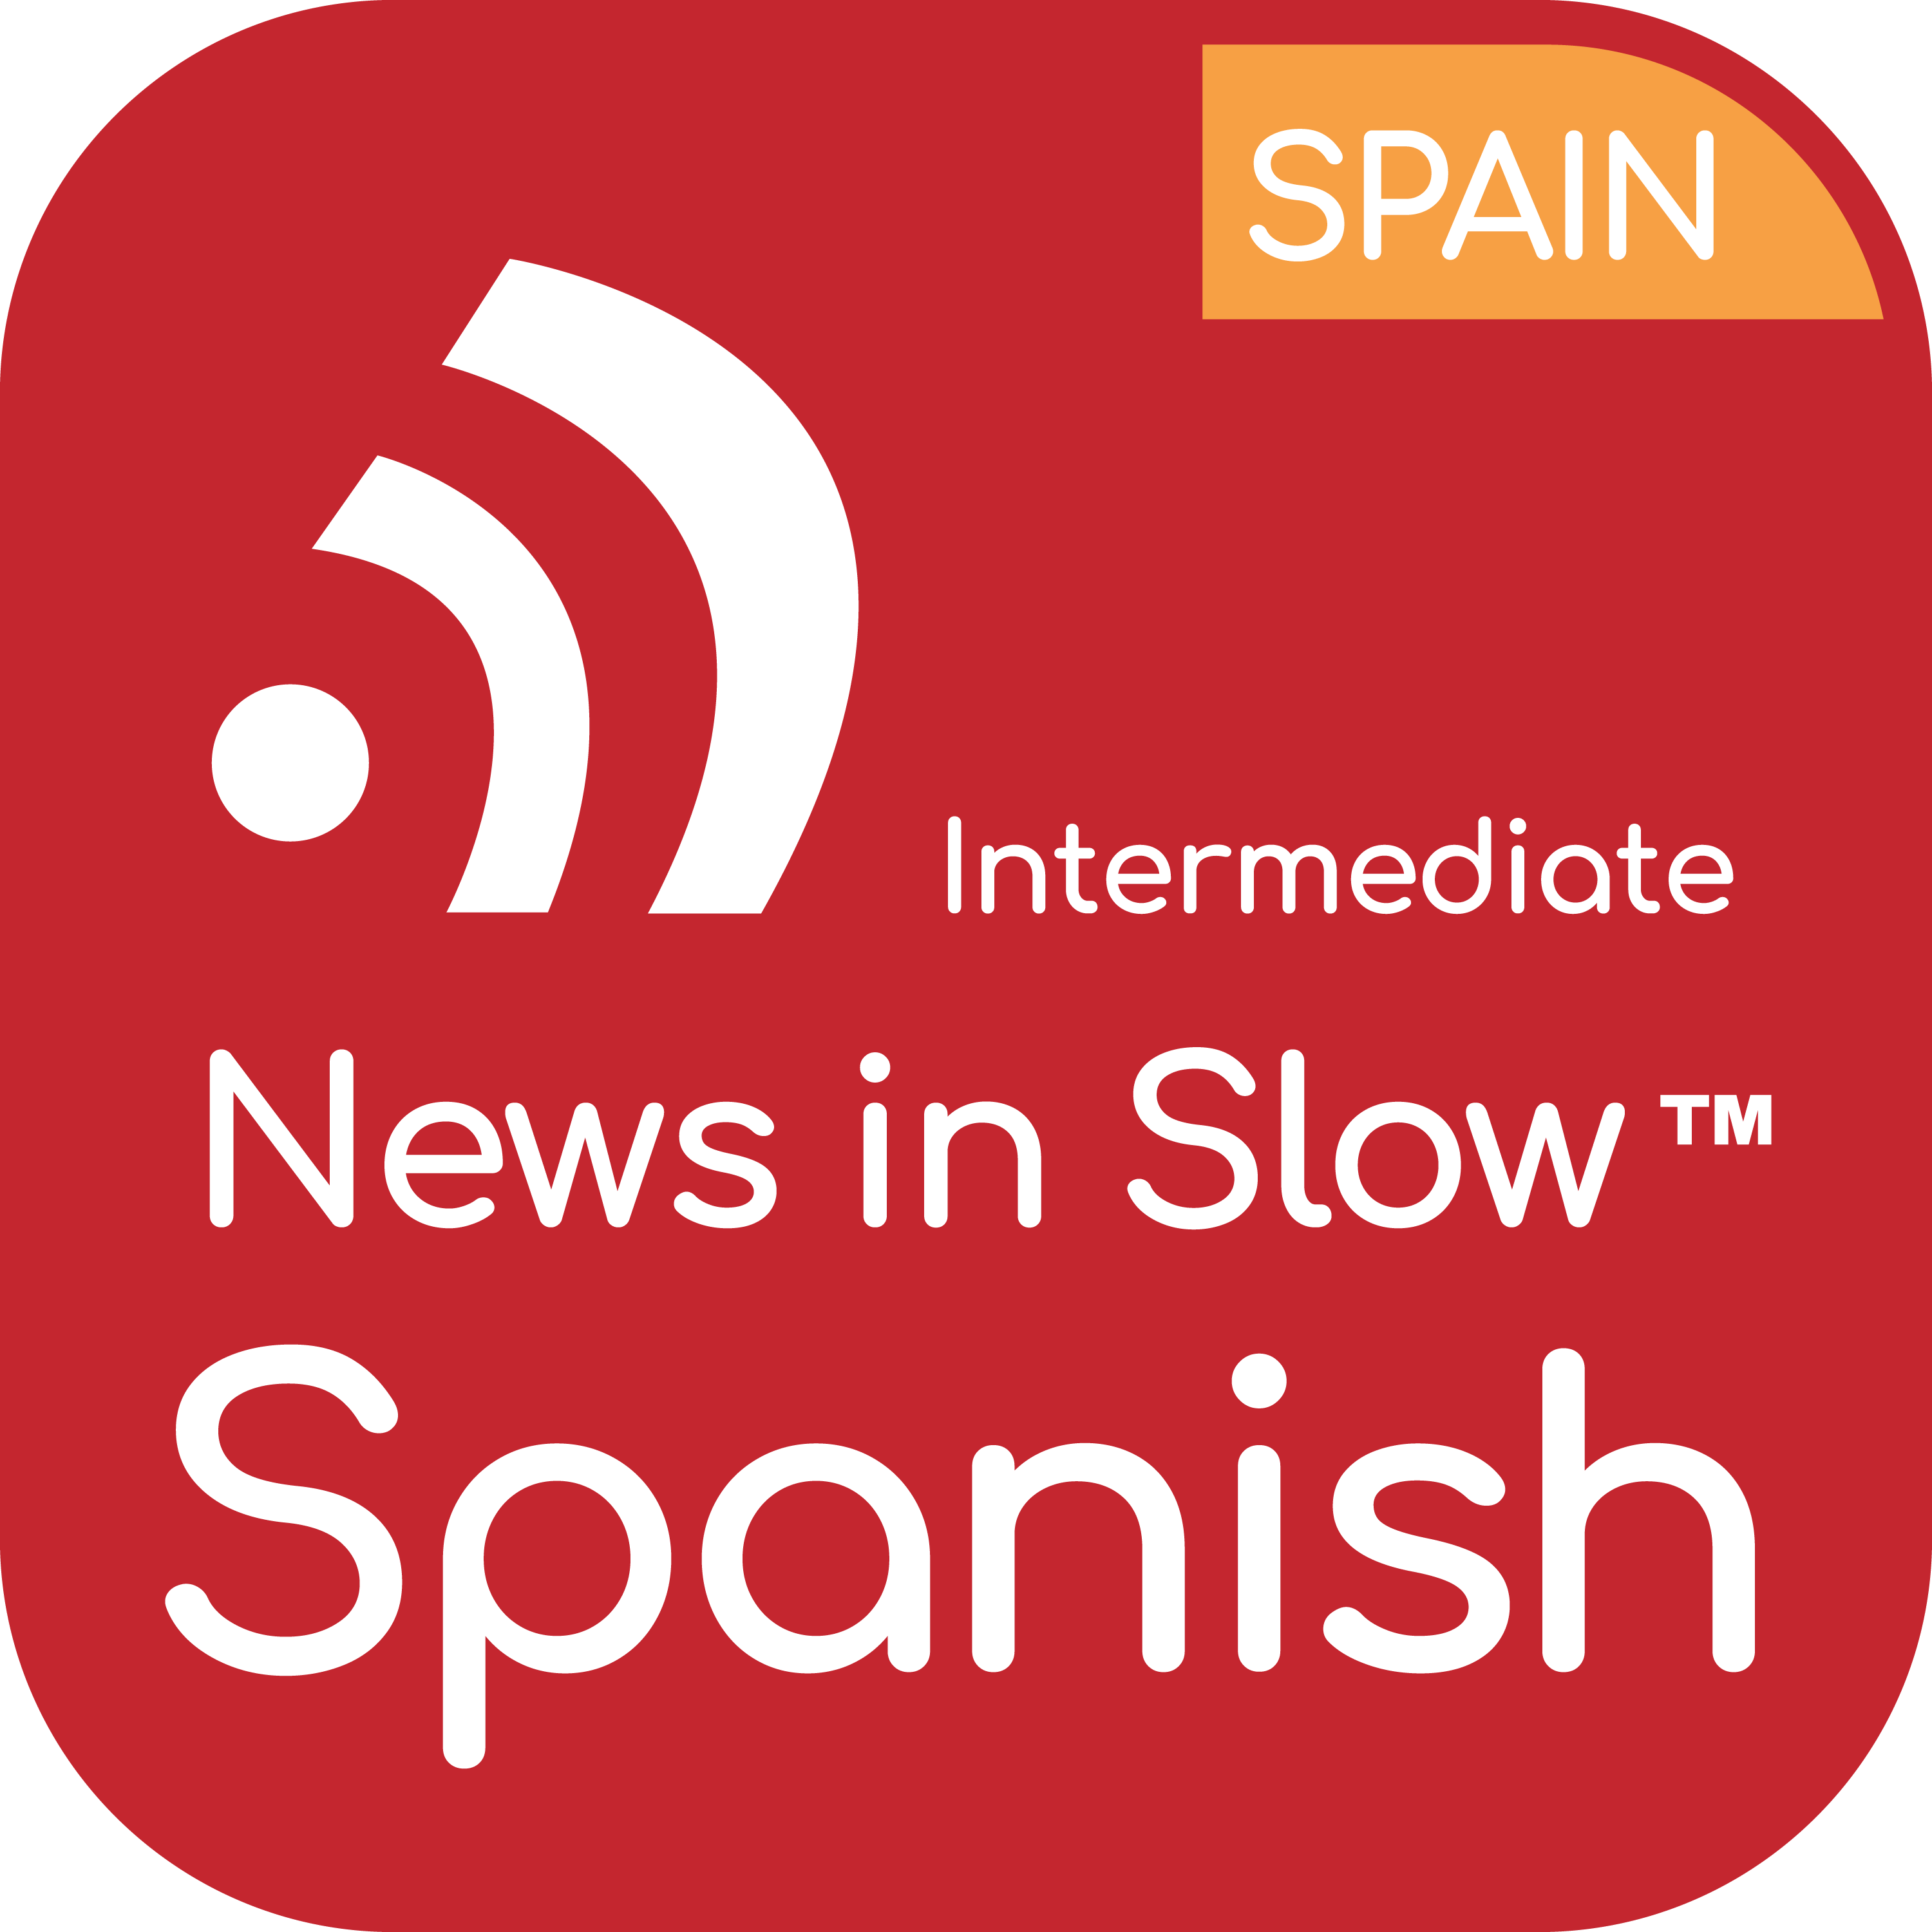 News in Slow Spanish - #621 - Intermediate Spanish Weekly Program